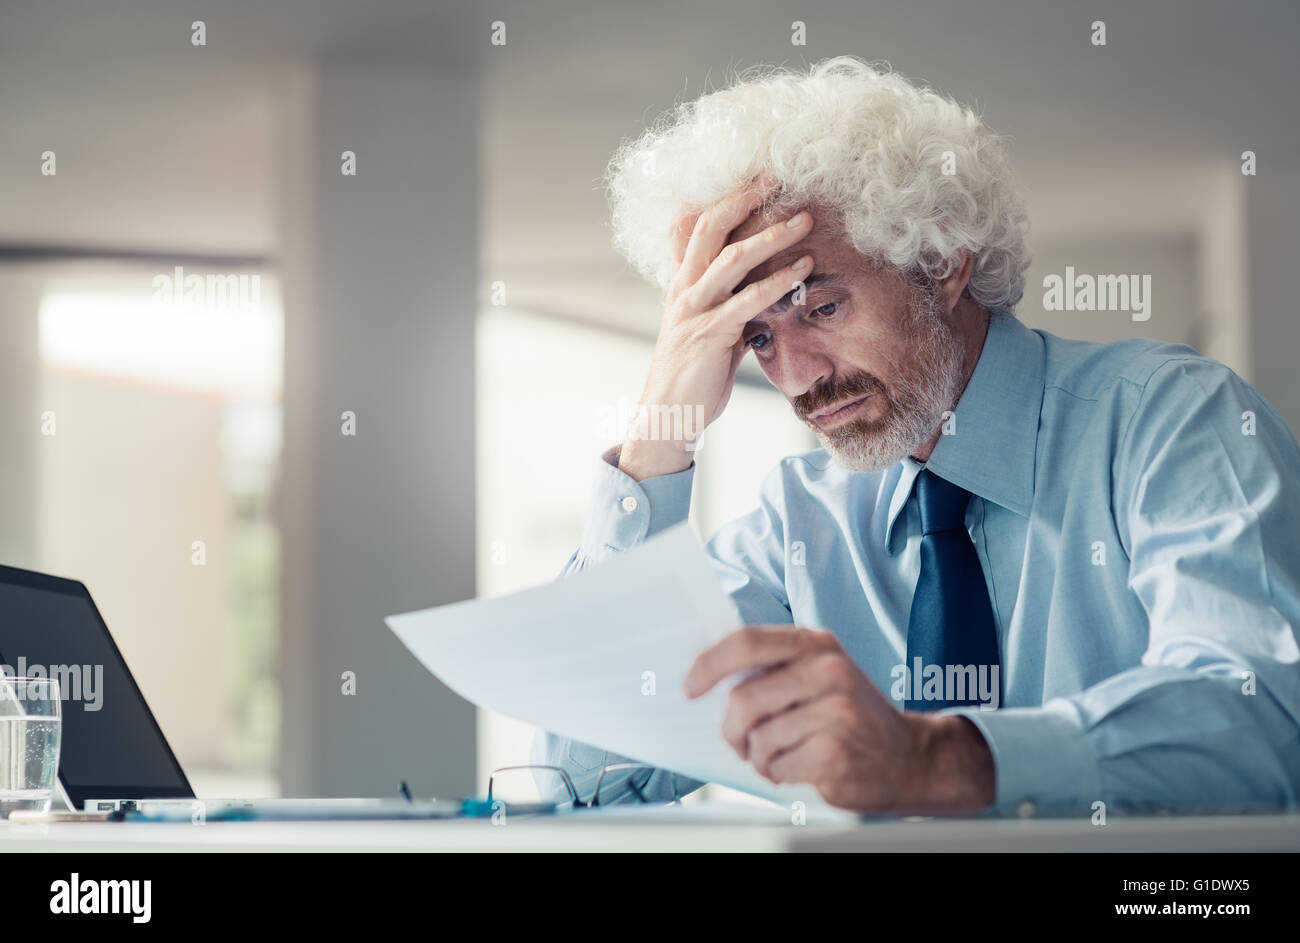 Confused Shocked Businessman Receiving Bad News Reading A Letter